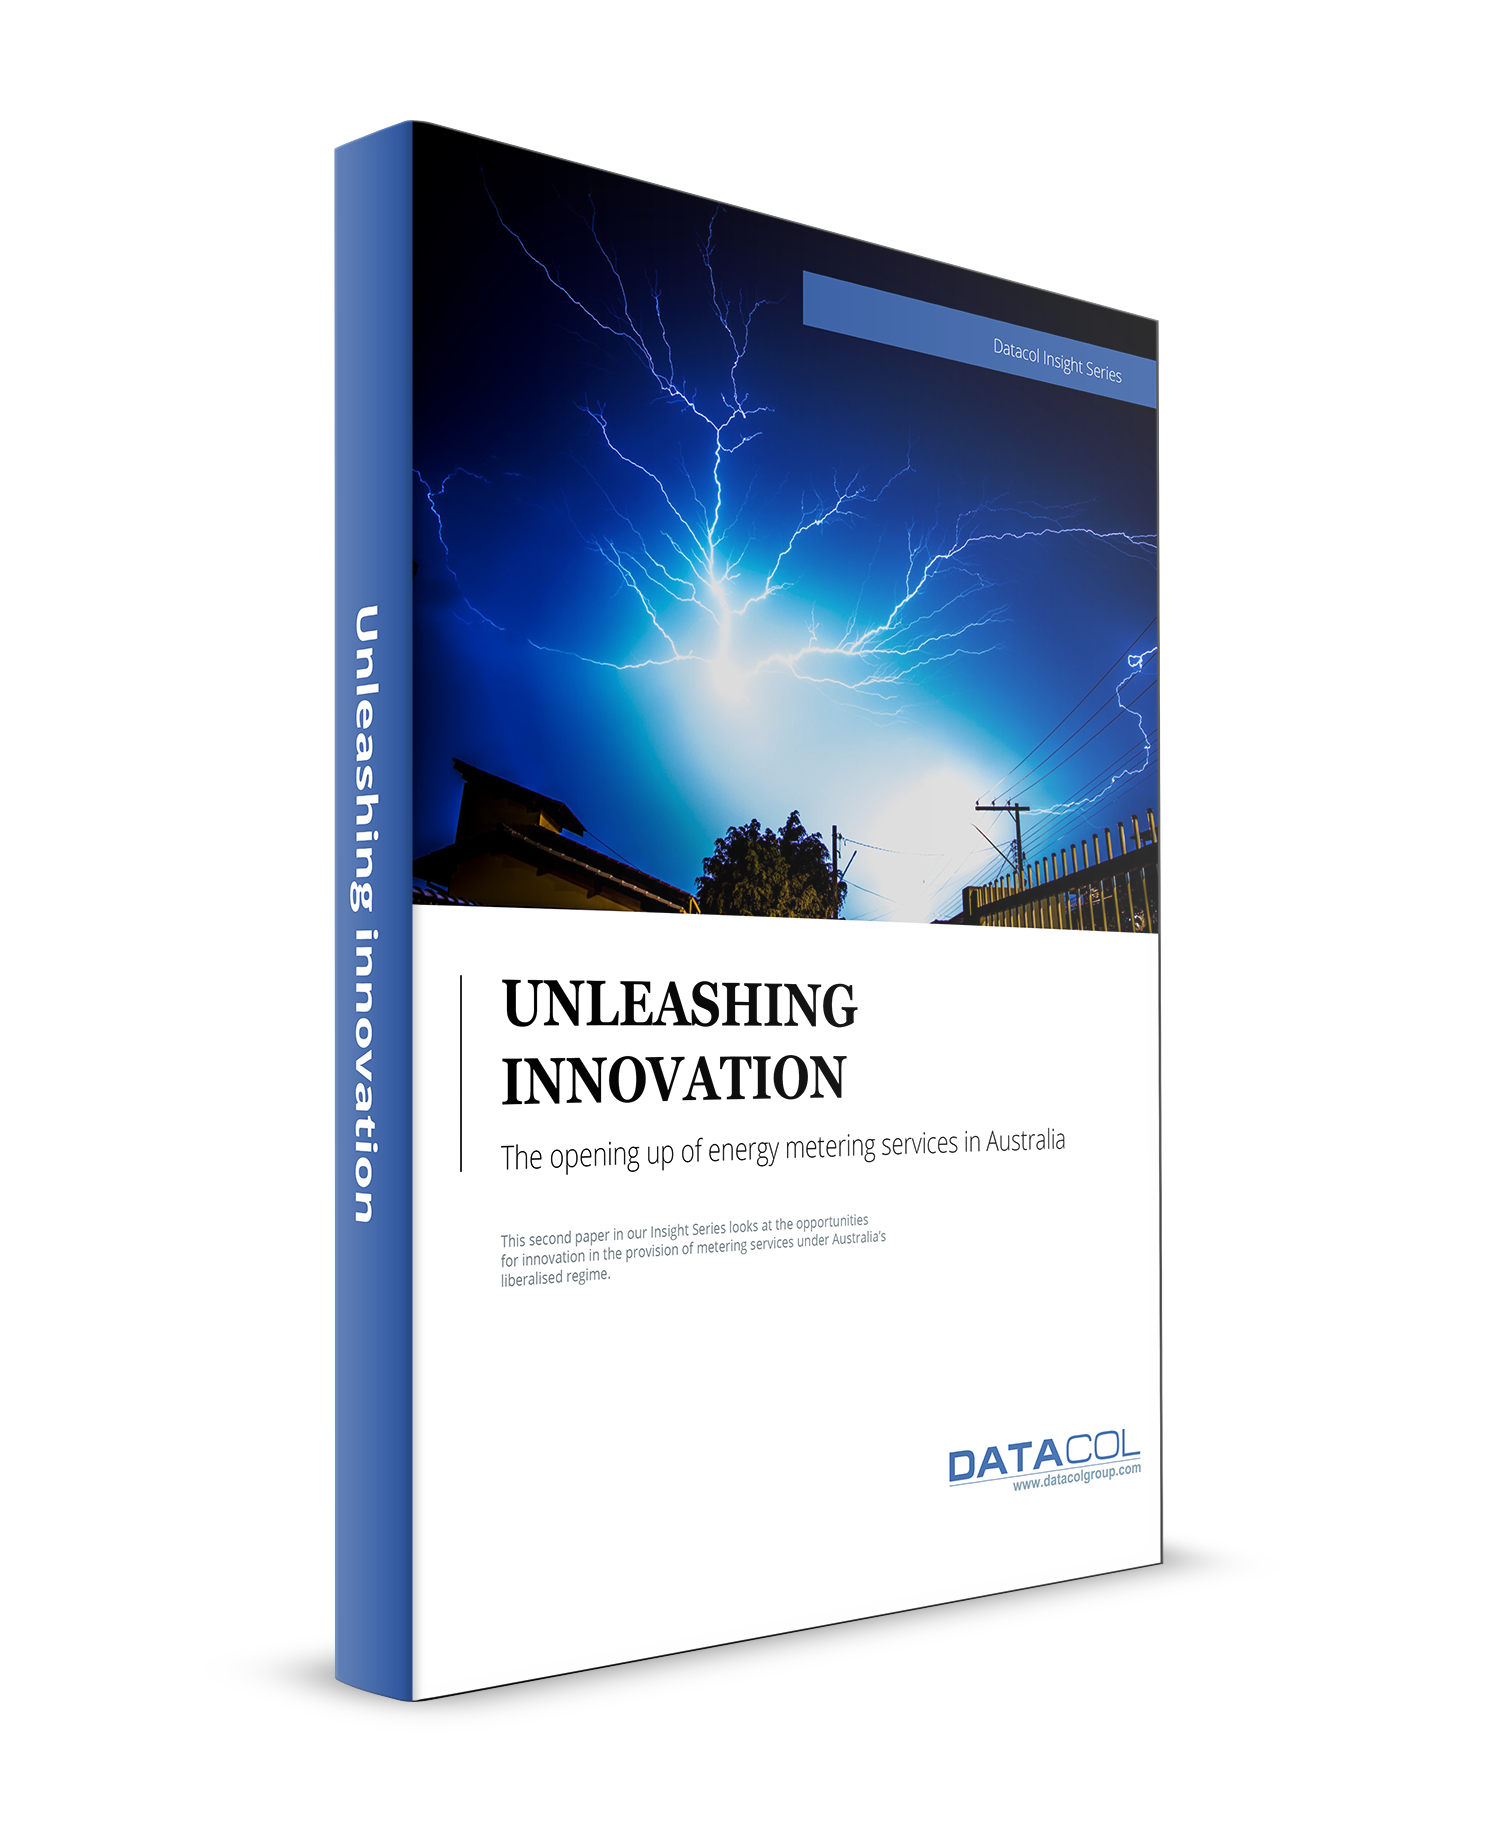 3Dcover-AUS-WP#3-unleashing-innovation.png